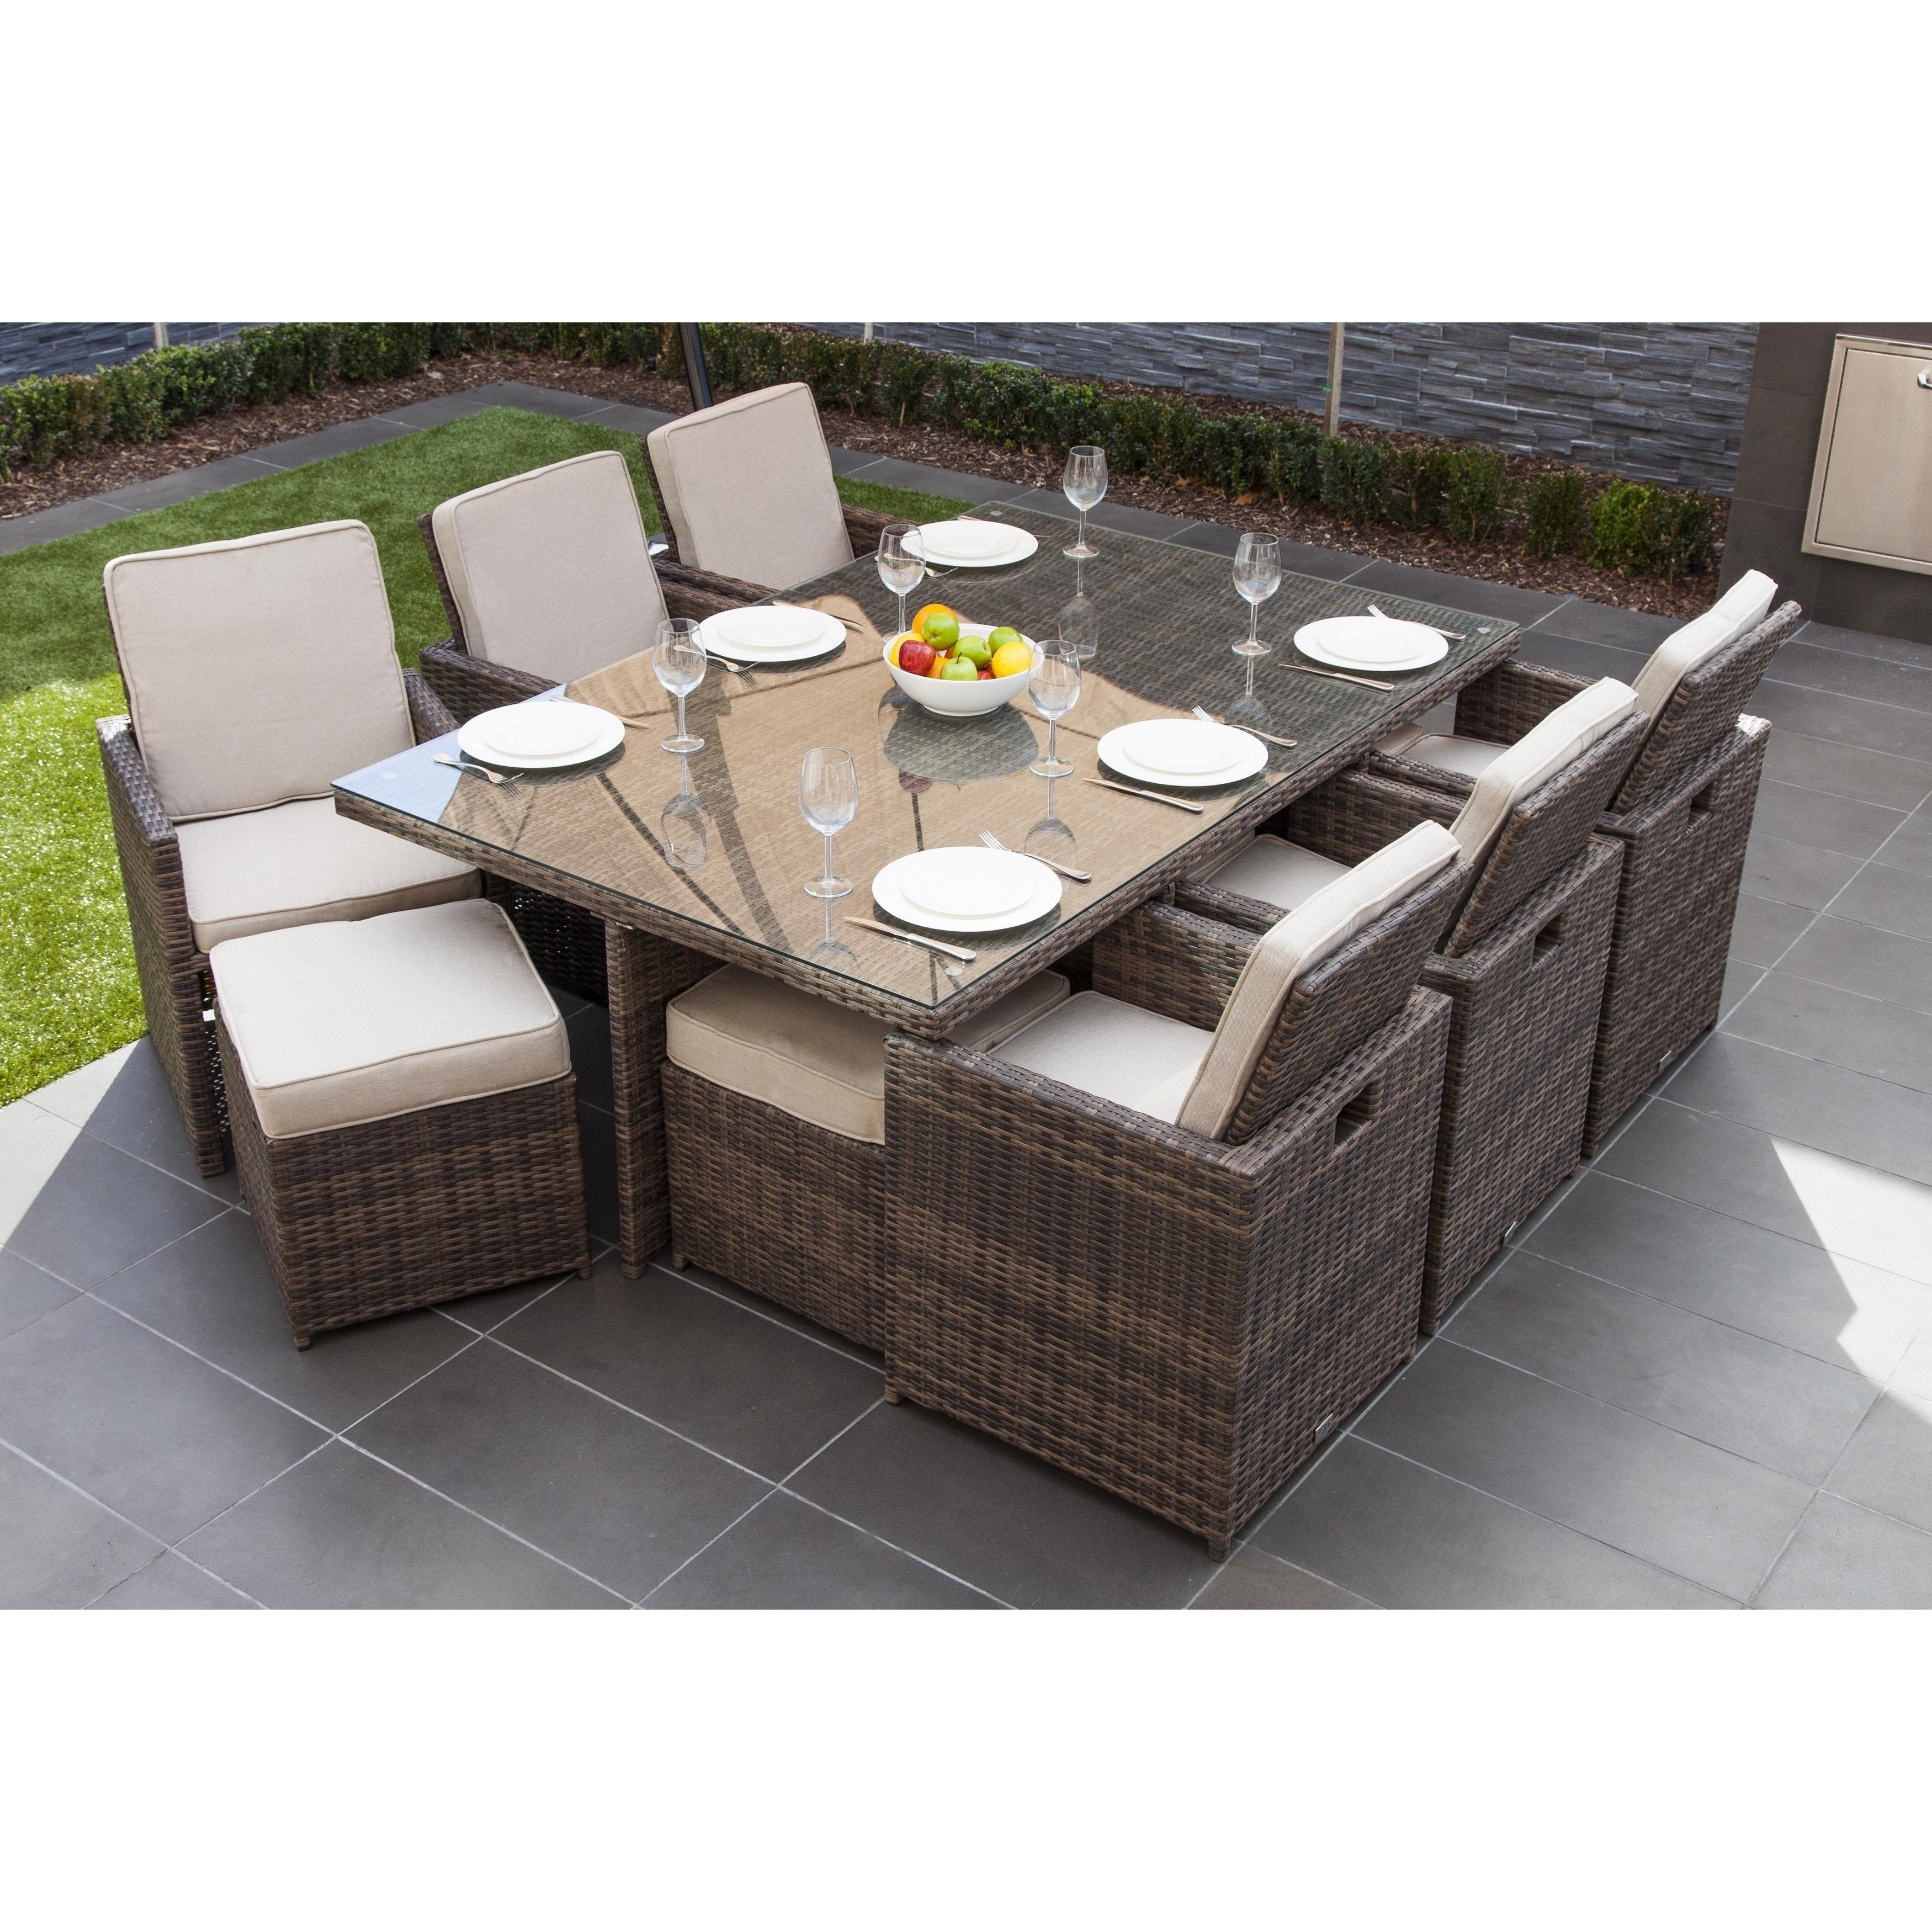 2017 Wicker And Glass Dining Tables Within Shop Malta 11 Piece Outdoor Wicker Dining Table And Cushion Set (View 21 of 25)